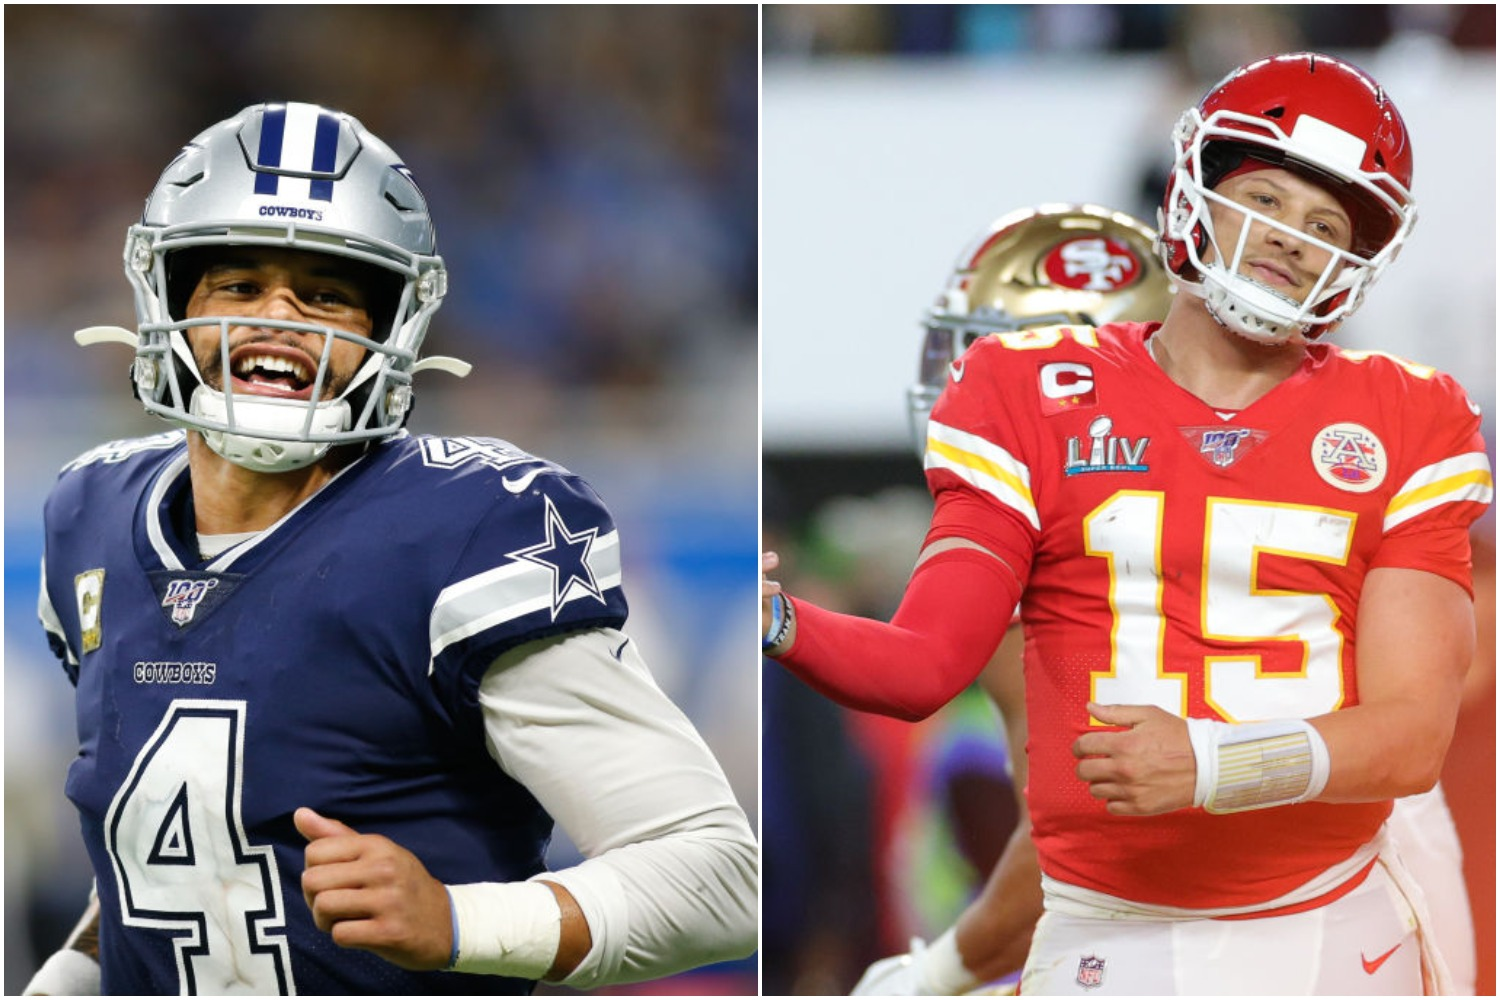 Dak Prescott and Patrick Mahomes will be two of the highest-paid quarterbacks in the NFL in 2020.